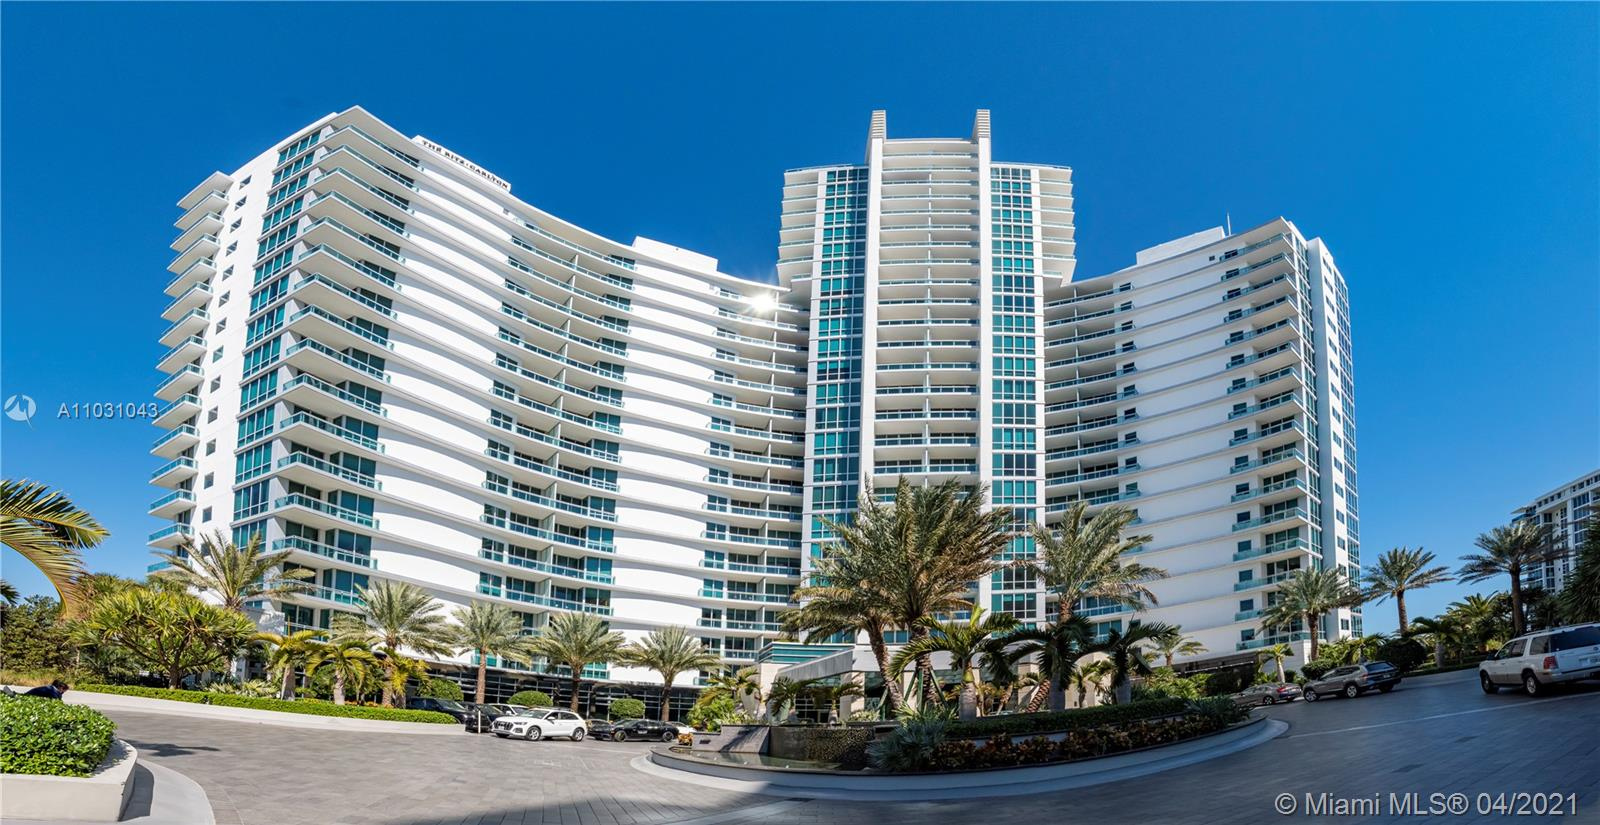 Breathtaking 1 Bedroom, 1 bath Condo-Hotel Luxury Residence. Ocean and canal panoramic views. Fully furnished by Ritz Carlton hotel standards. Unit under Hotel Program. Make money when not using unit. Please schedule showing 24 hrs in advance.